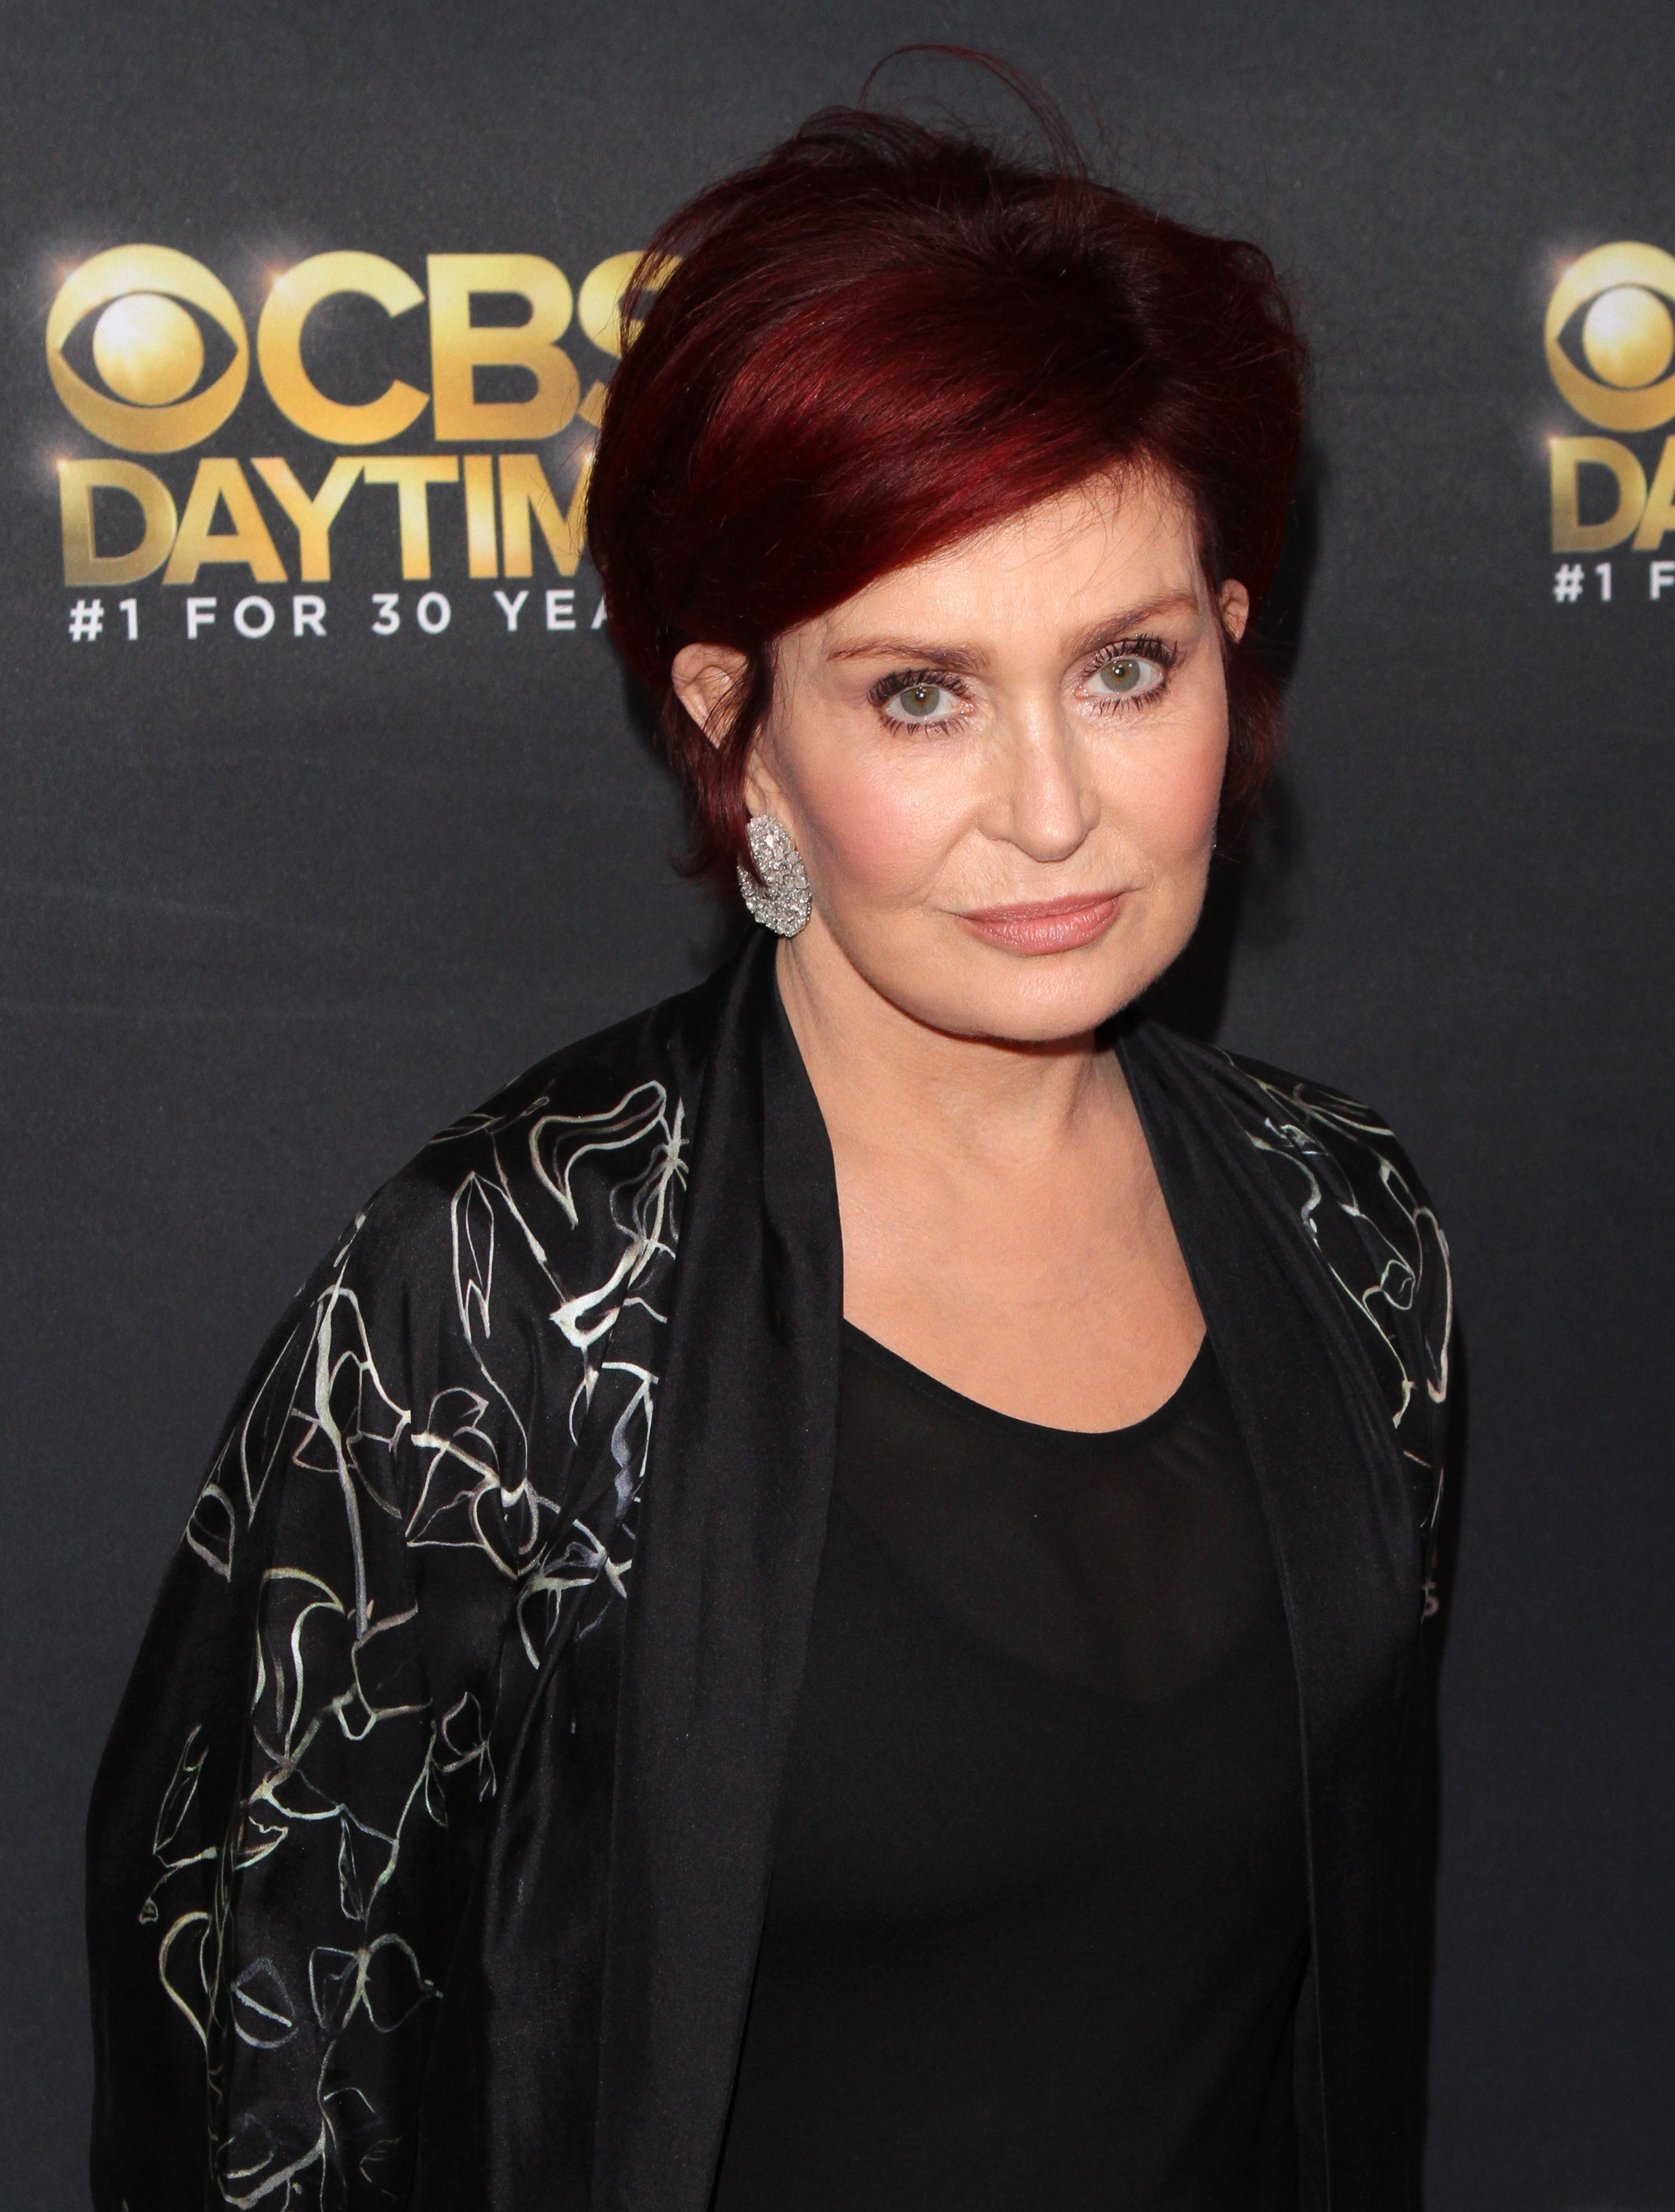 Sharon Osbourne attends the CBS Daytime Emmy after party on April 30, 2017. | Photo: GettyImages